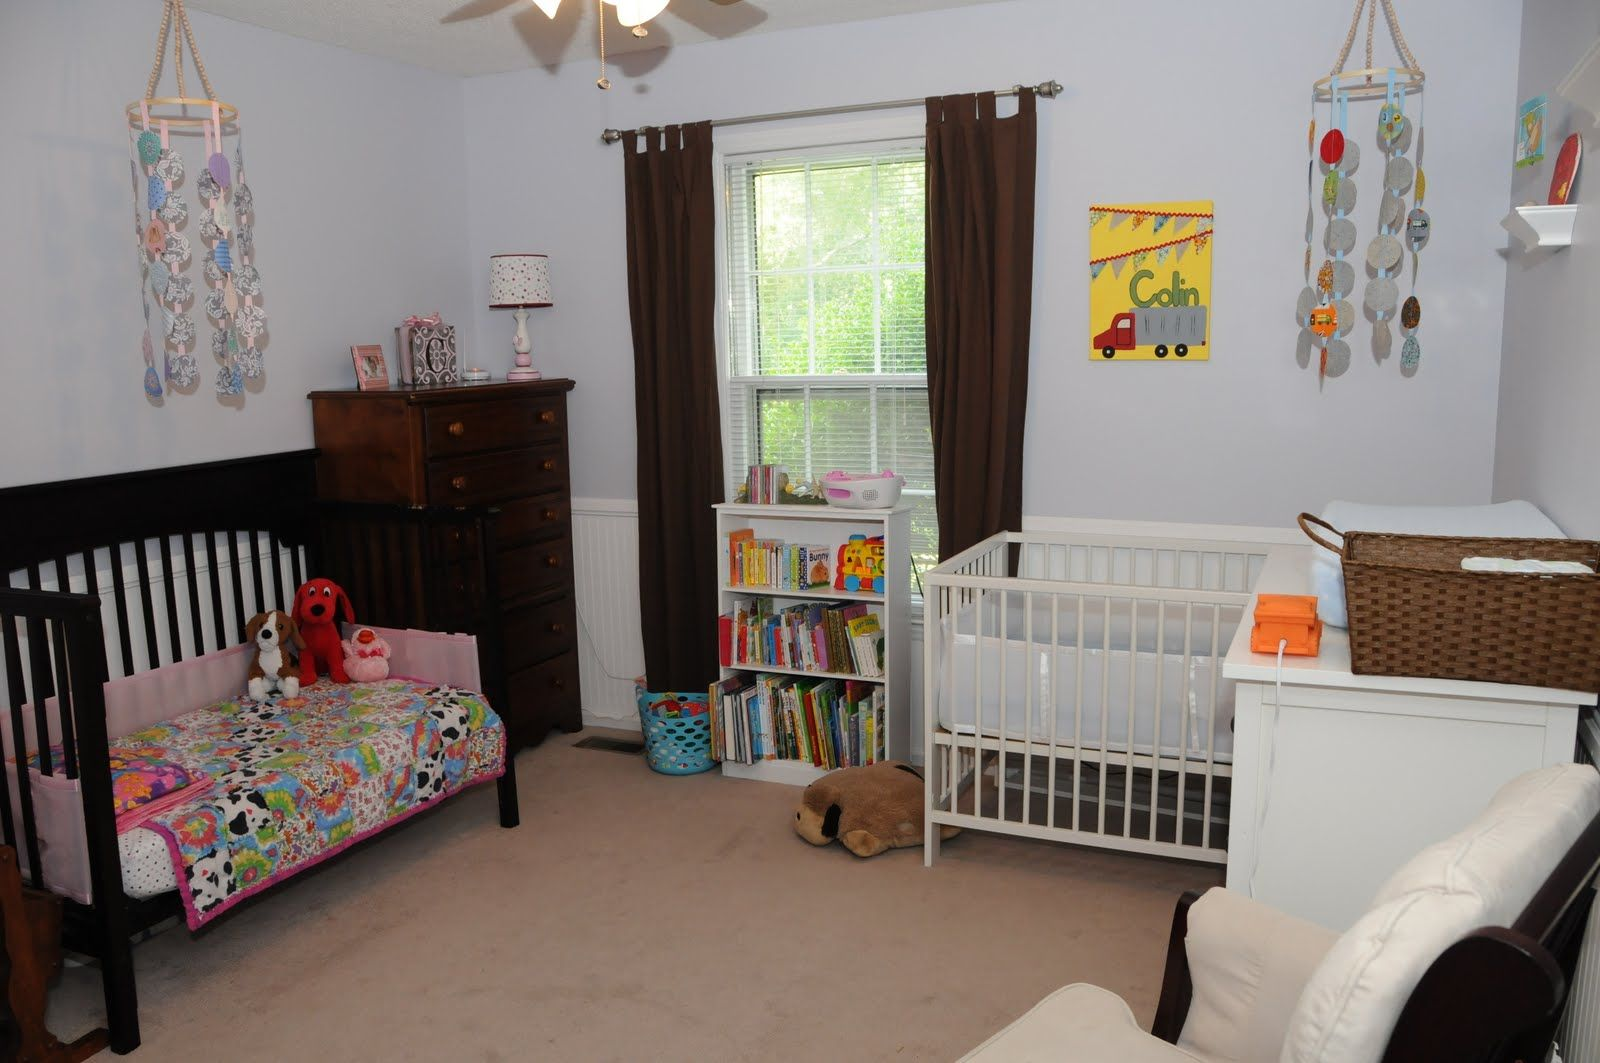 Best Toddler Baby Shared Room My Home Projects Pinterest 640 x 480